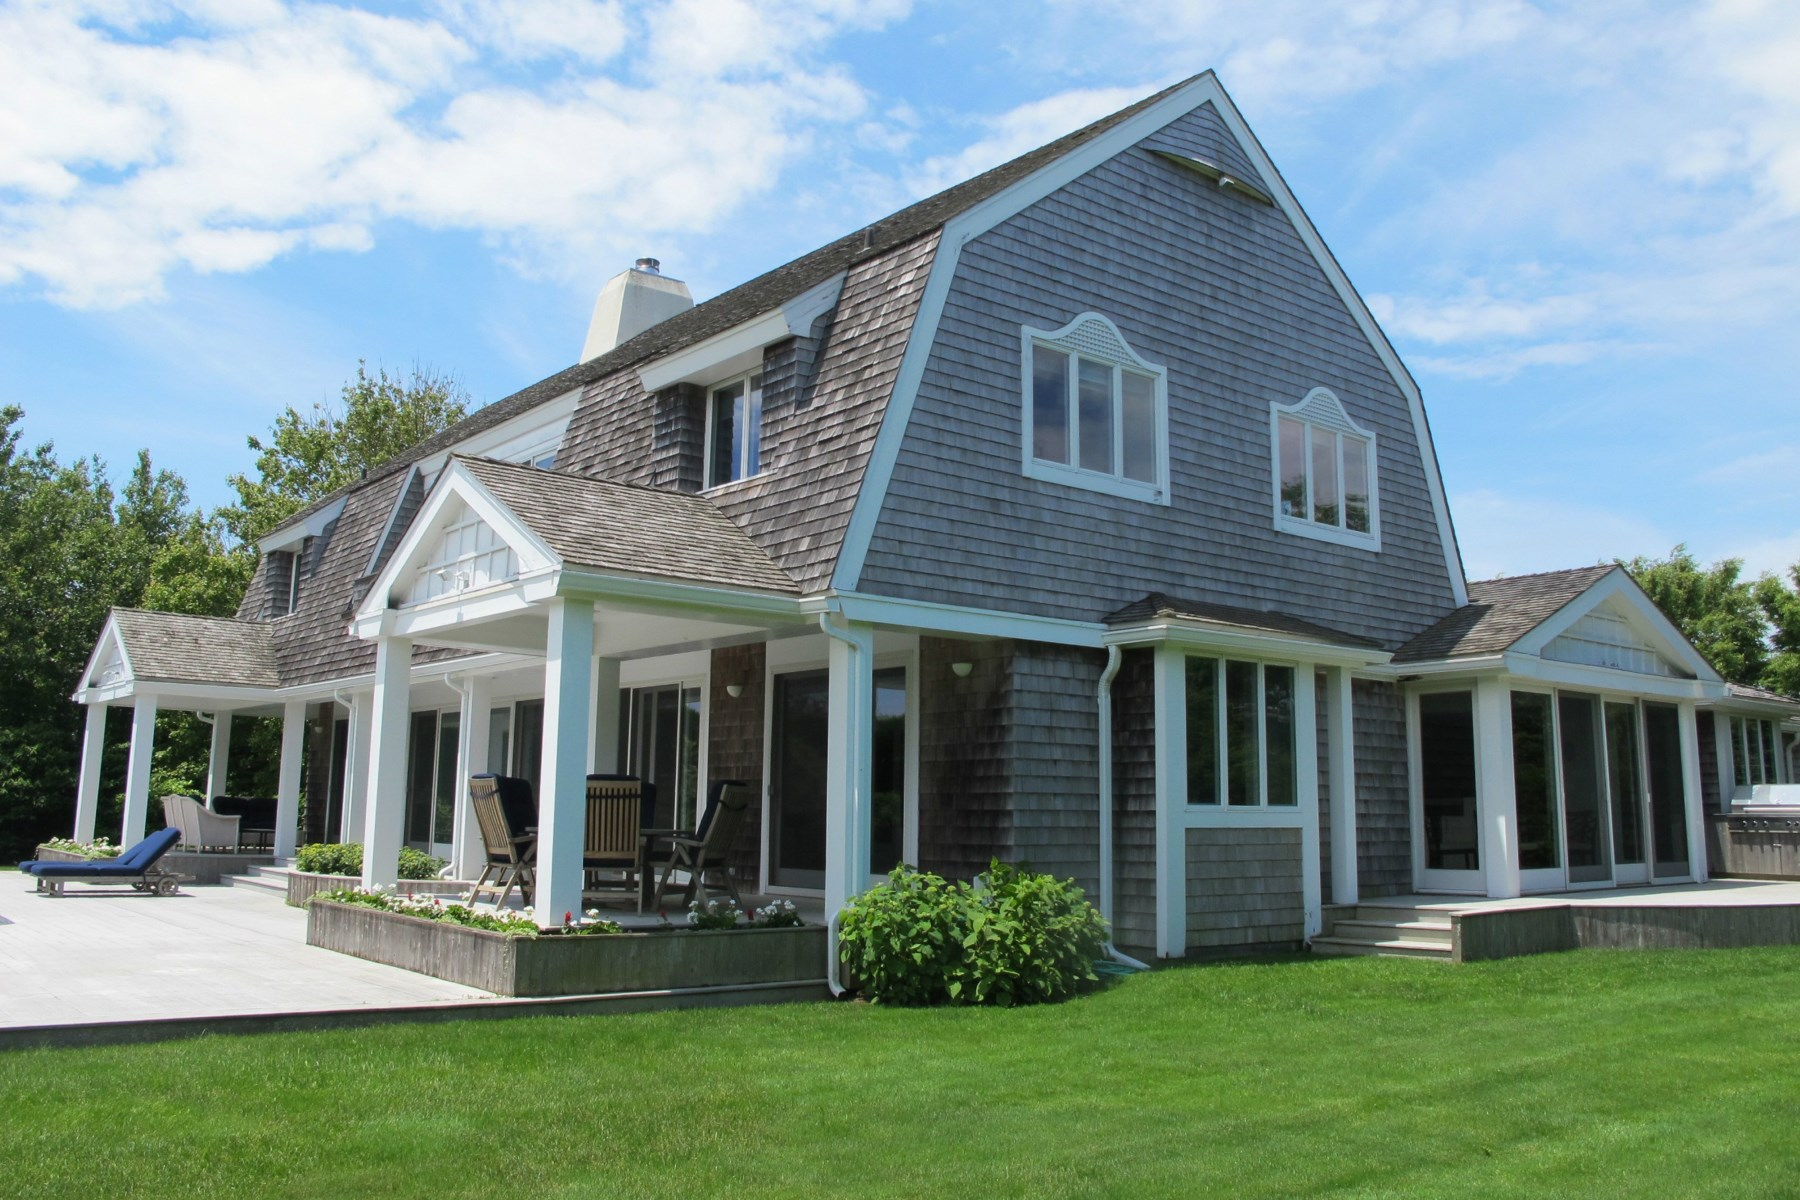 Additional photo for property listing at Near Mecox Bay - Water Mill 39 Bay Ln Water Mill, New York 11976 United States